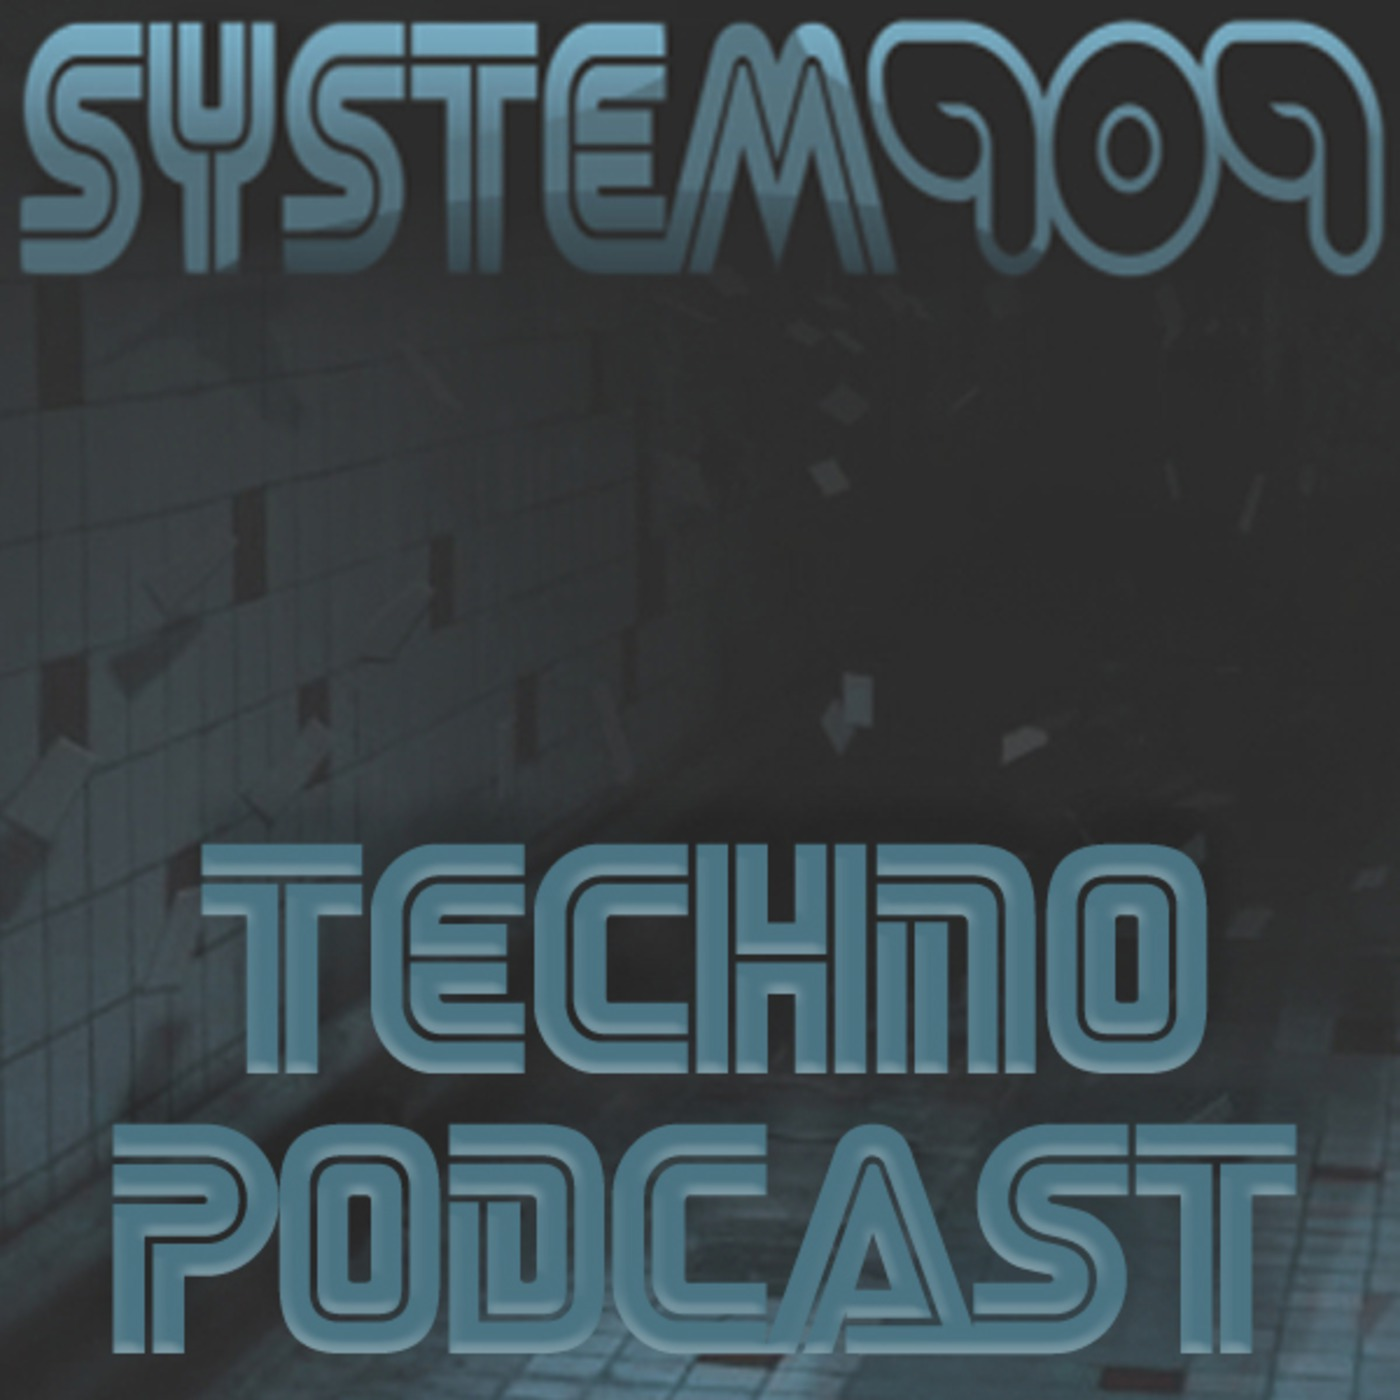 SYSTEM 909 Techno Podcast